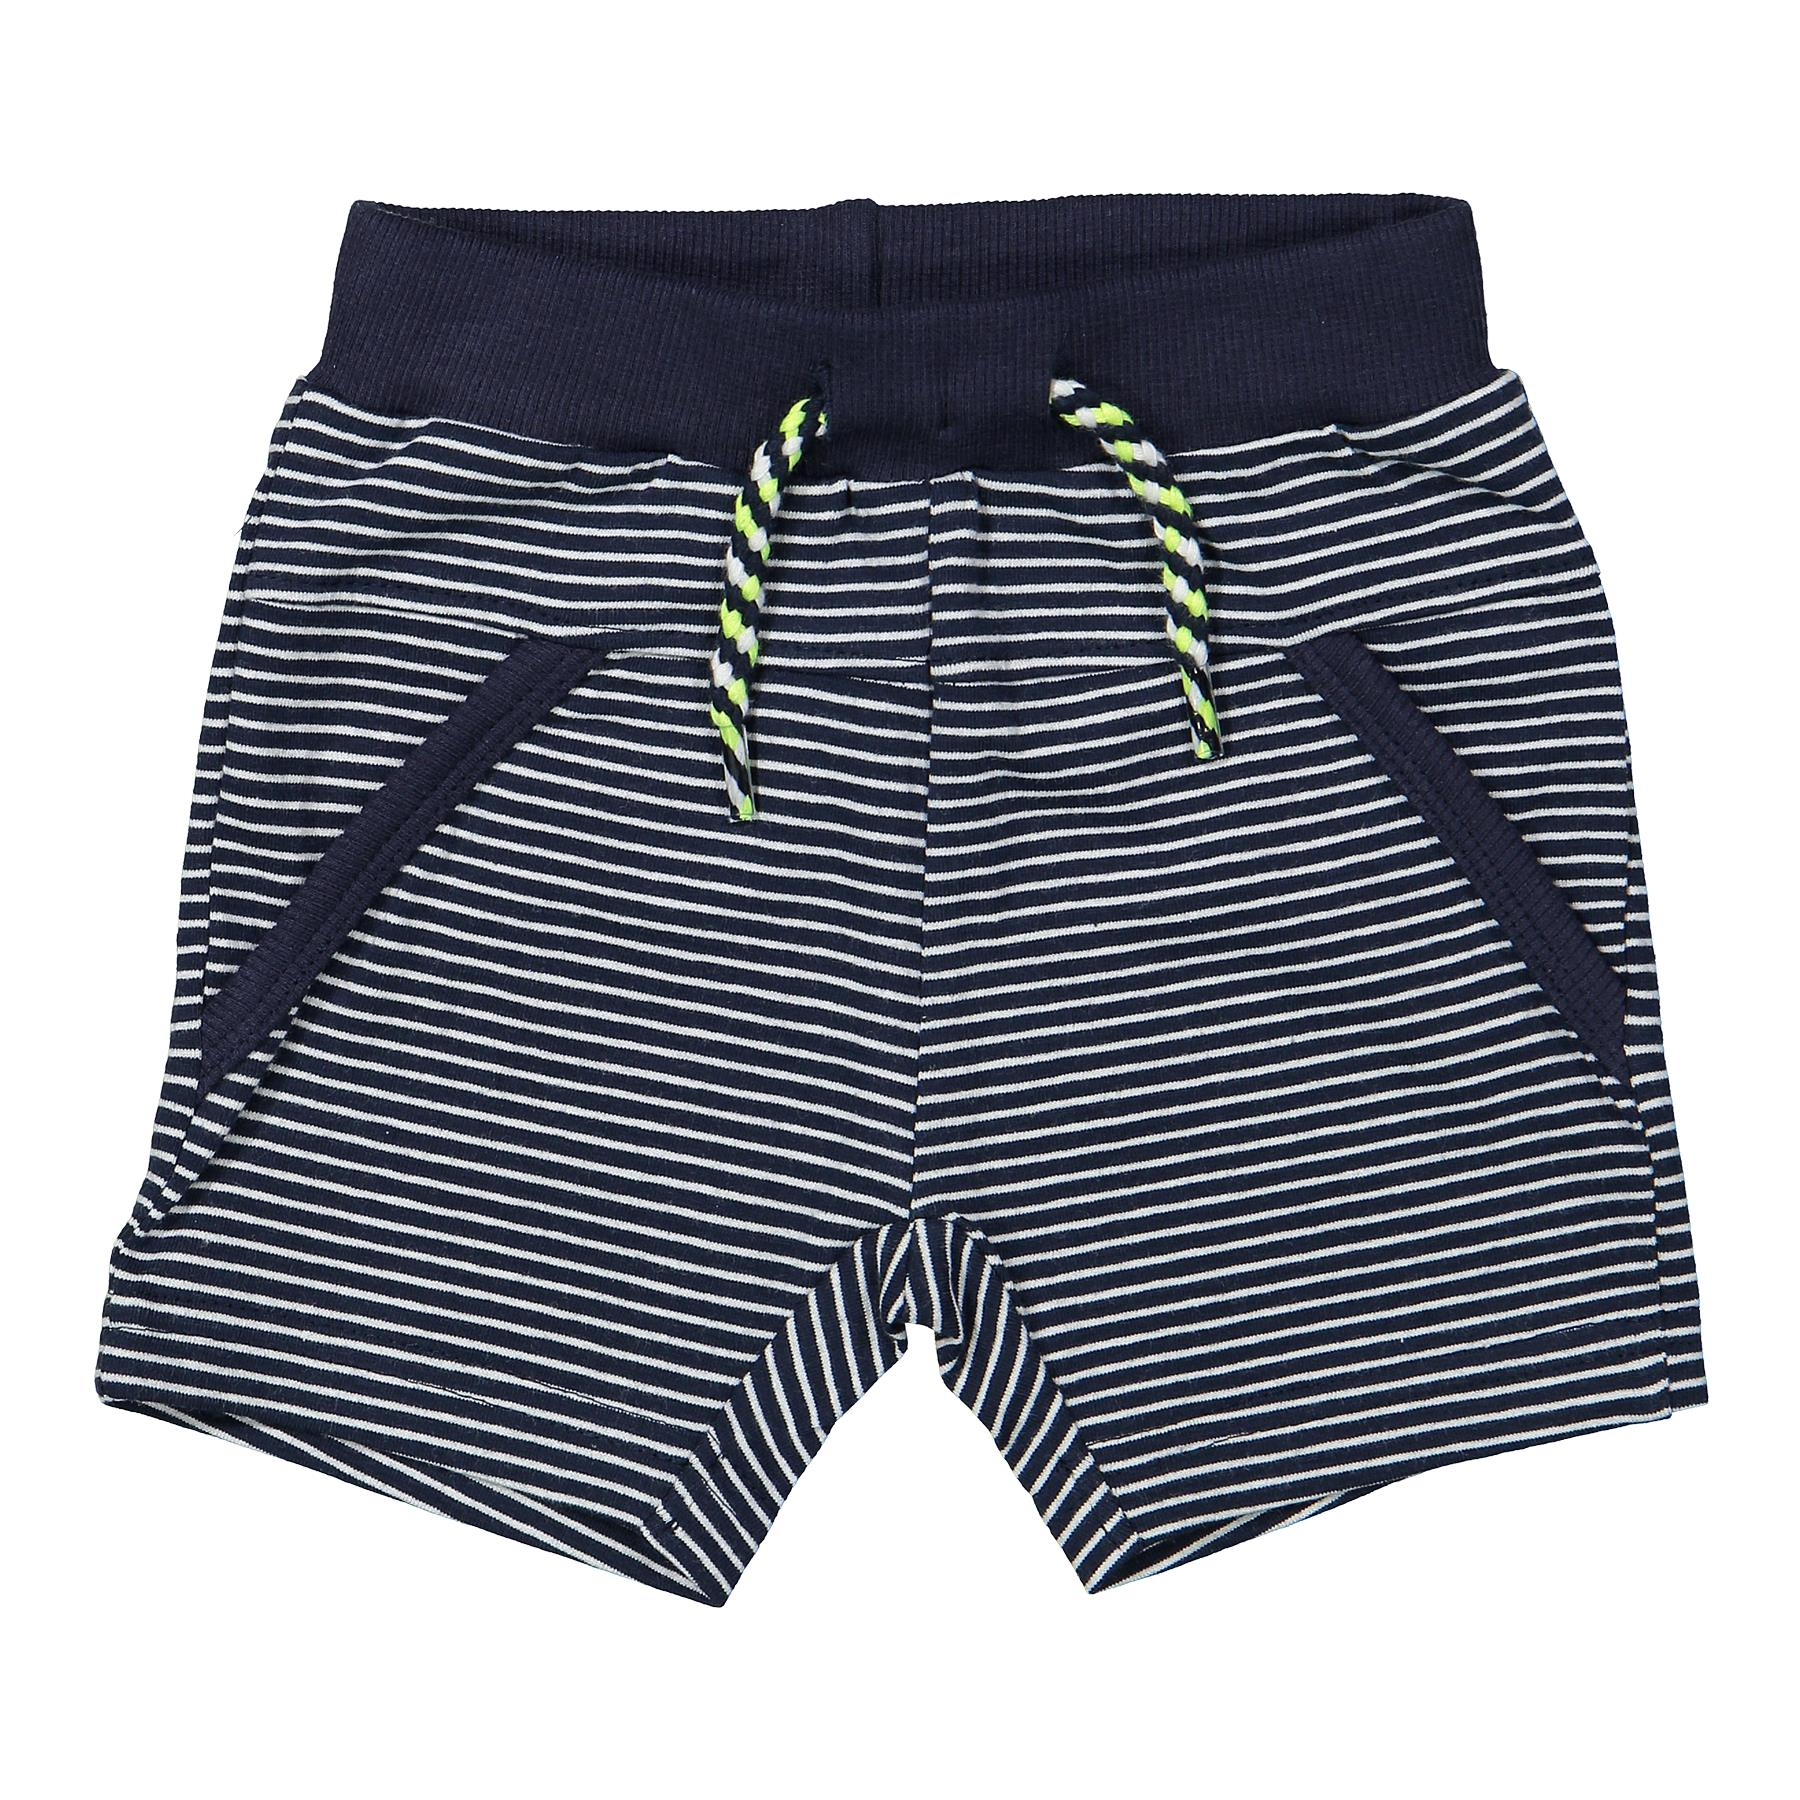 DIRKJE Šortky A-SO FRESH SPACE IT UP! vel. 74 Navy stripe